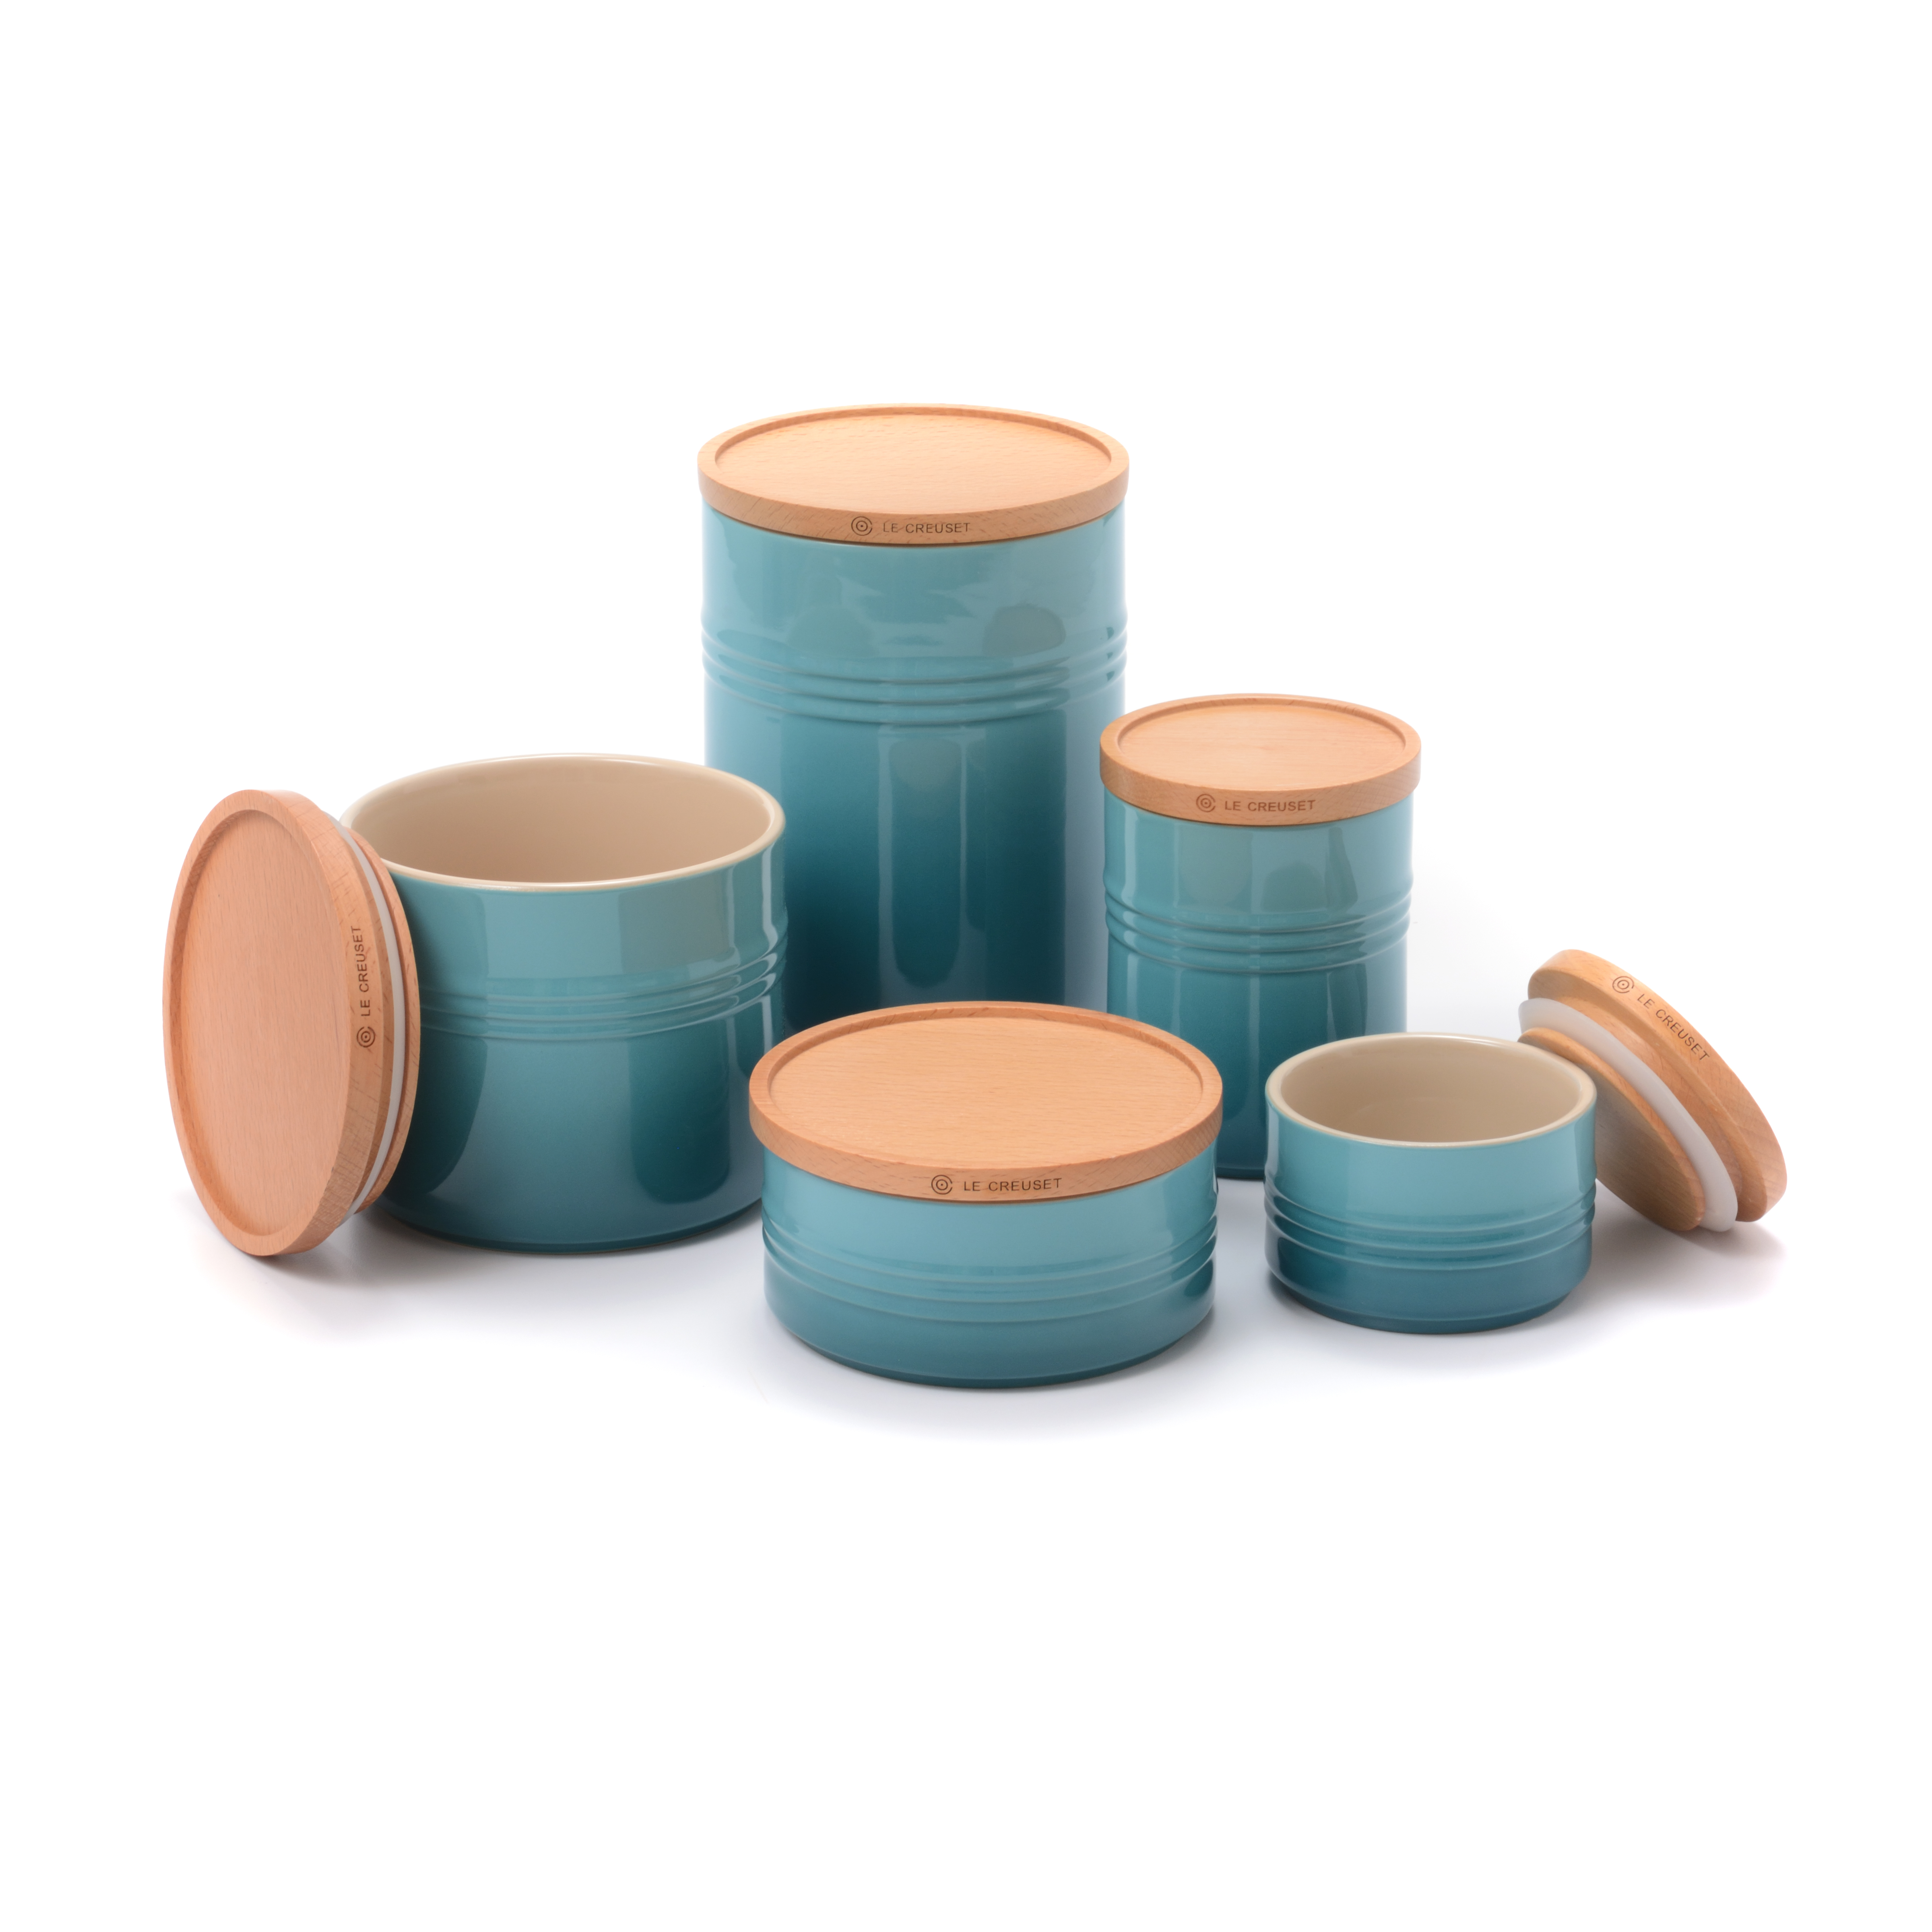 Le Creuset Caribbean Stoneware 5 Piece Canister with Wooden Lid Set